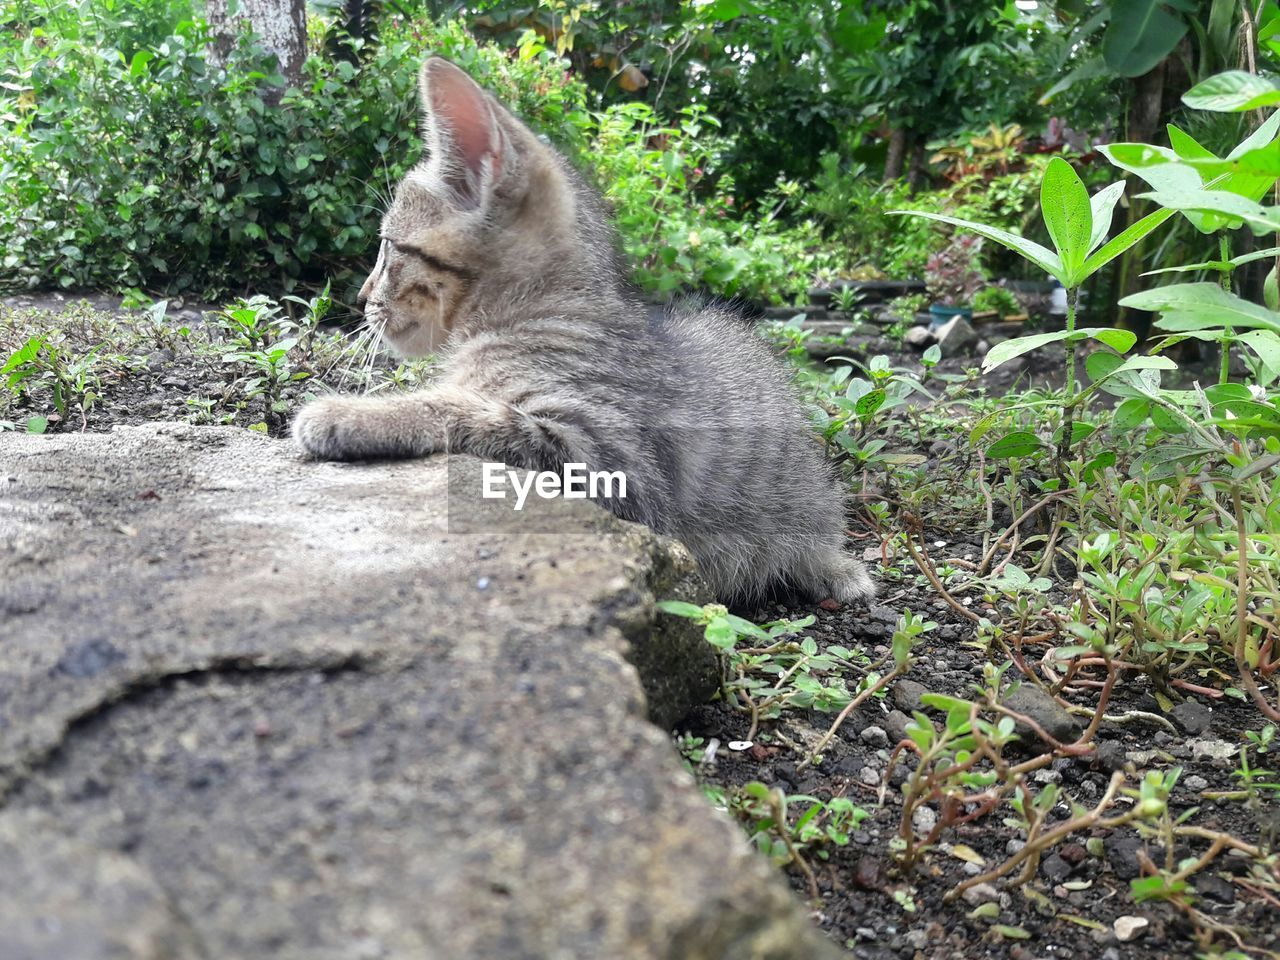 cat, mammal, domestic cat, animal themes, feline, domestic, animal, pets, one animal, domestic animals, vertebrate, plant, no people, nature, relaxation, day, field, land, sitting, plant part, whisker, tabby